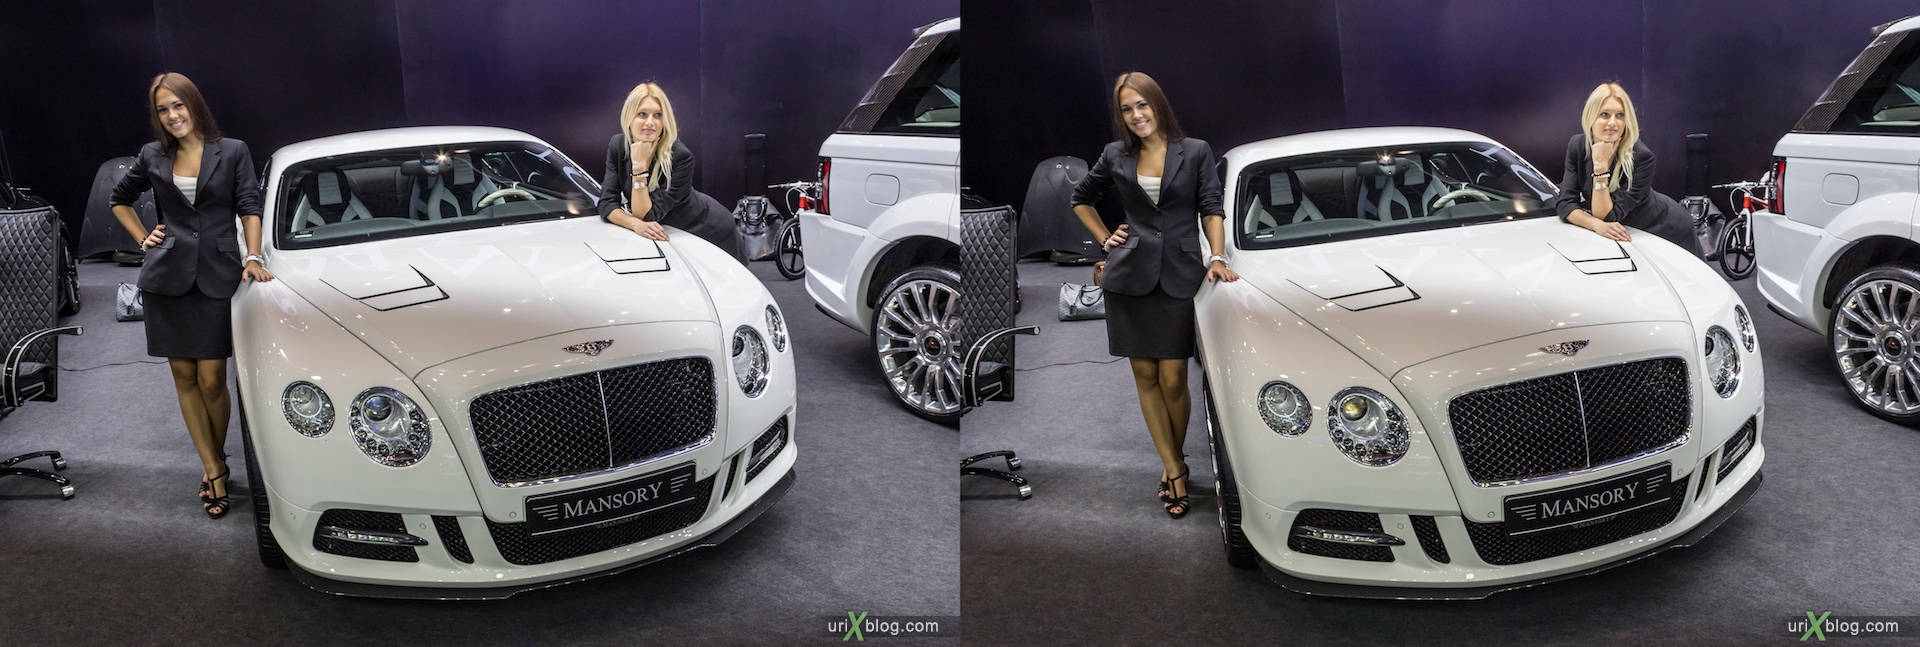 2012, Mansory, девушки, модели, girls, models, Moscow International Automobile Salon, auto show, 3D, stereo pair, cross-eyed, crossview